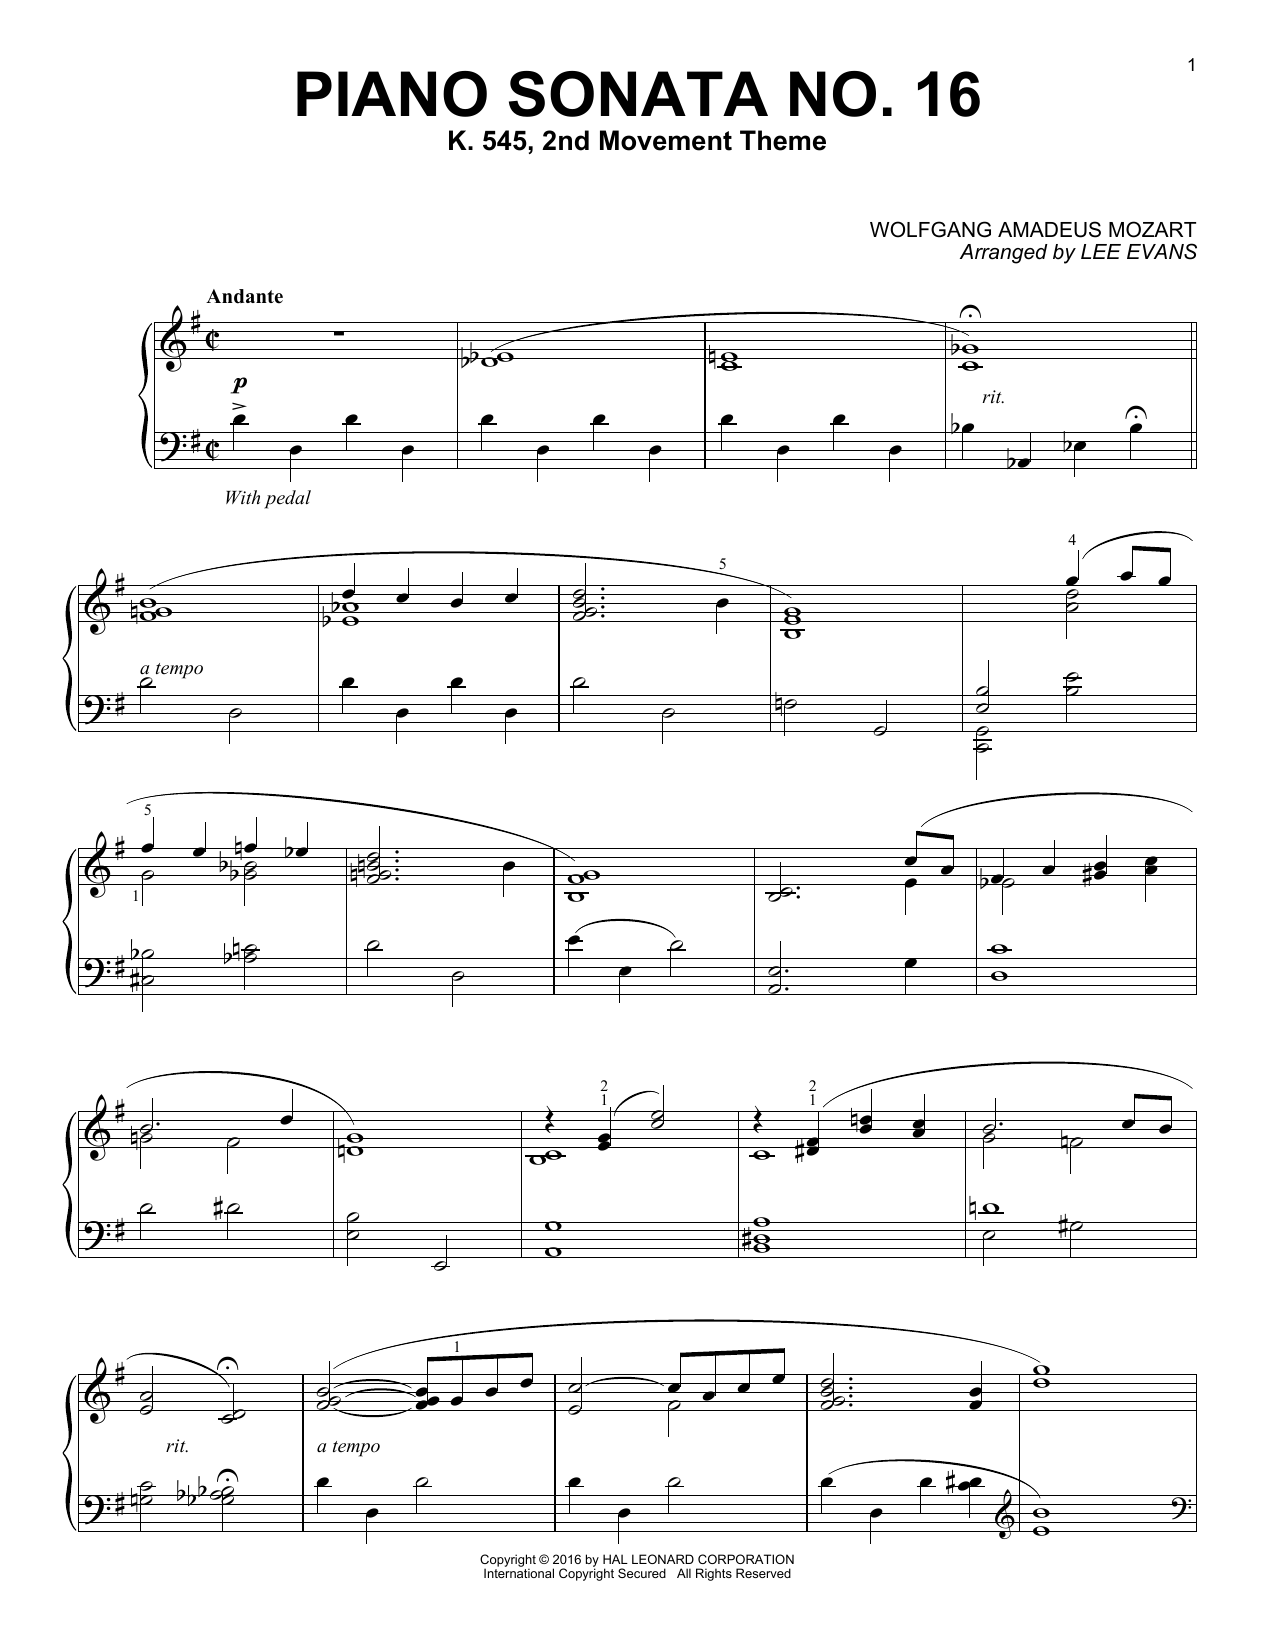 Lee Evans Piano Sonata In C Major, K.545, 2nd Movement sheet music notes and chords. Download Printable PDF.